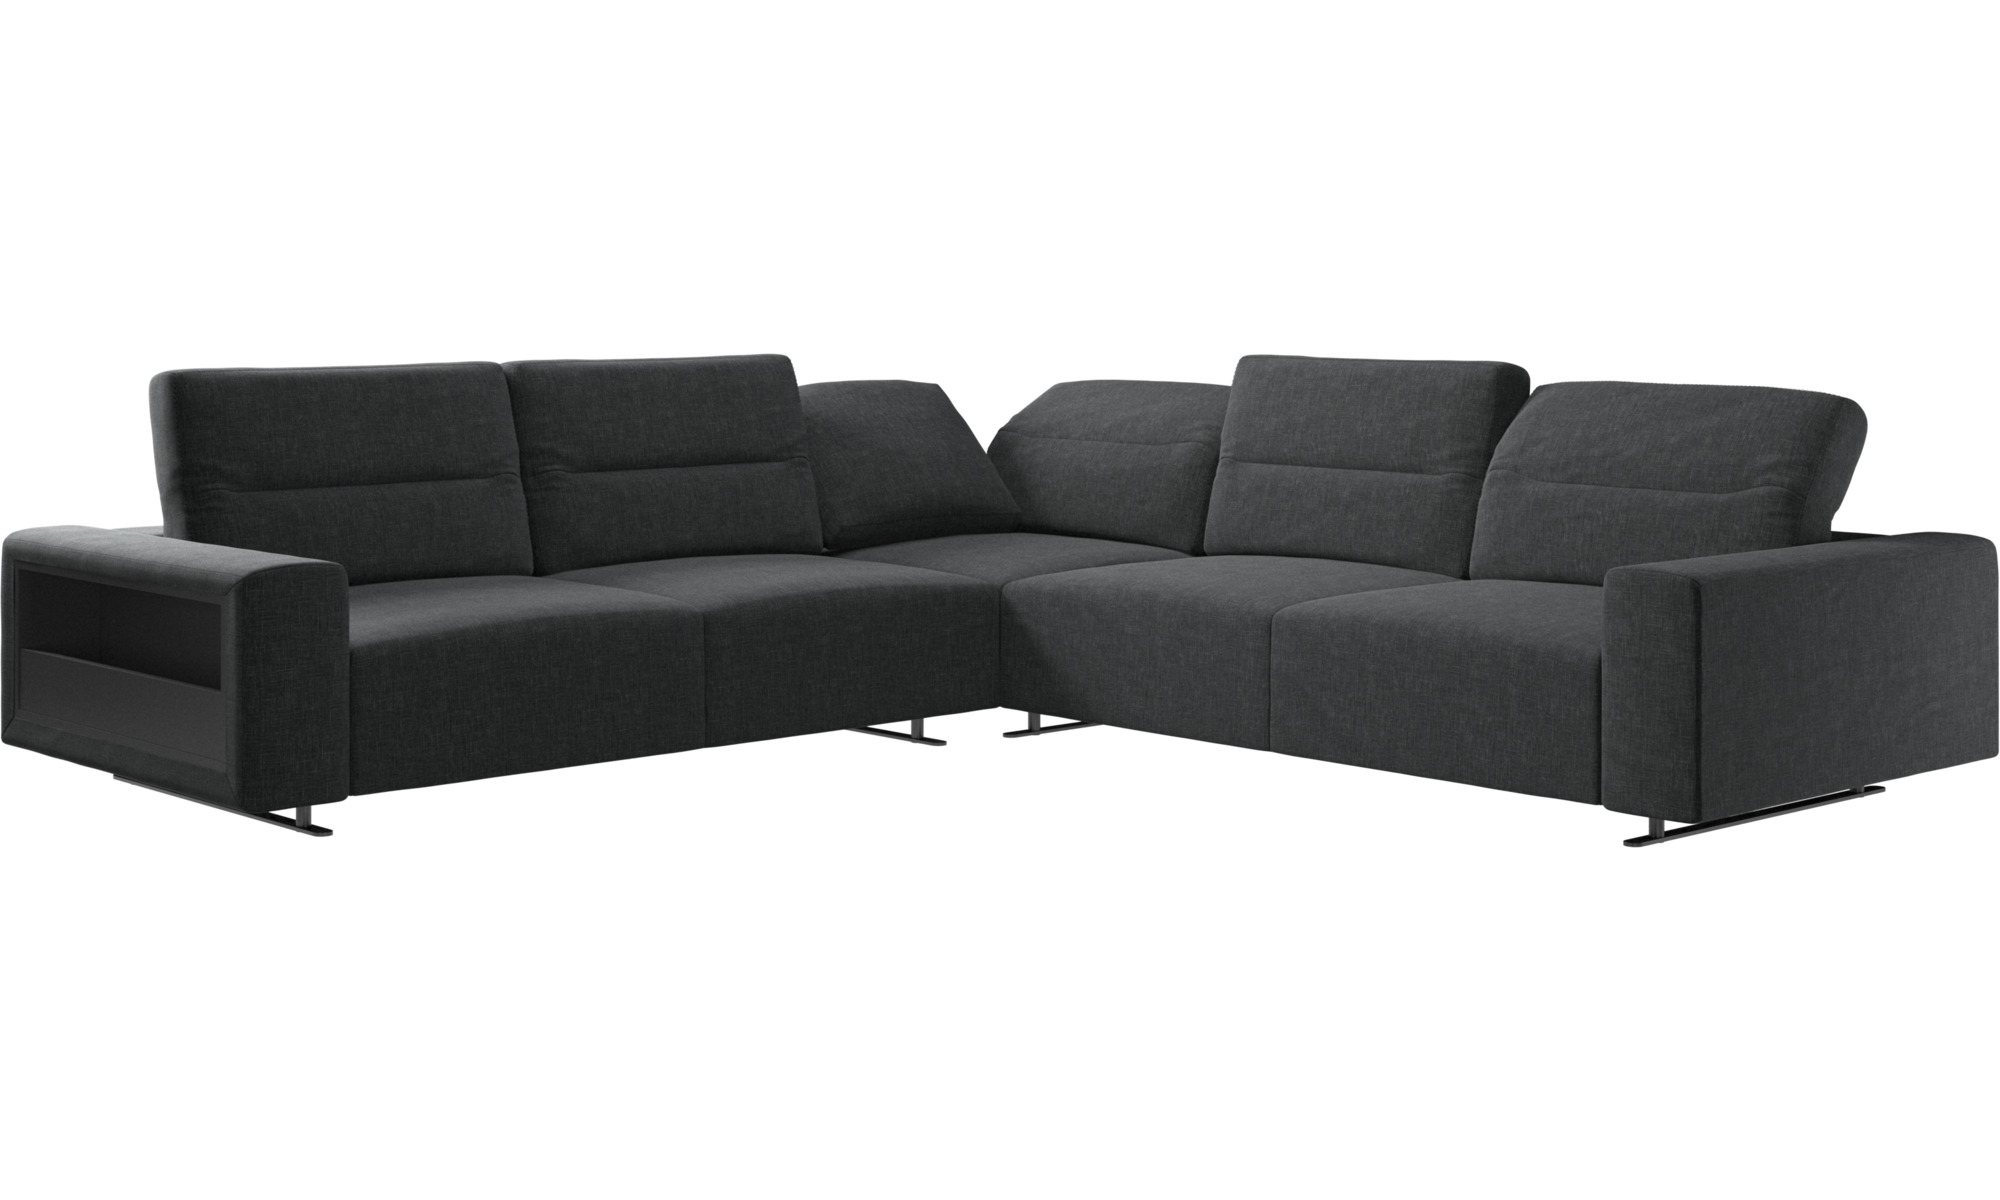 sofa hampton ecksofa mit verstellbarer r ckenlehne und. Black Bedroom Furniture Sets. Home Design Ideas